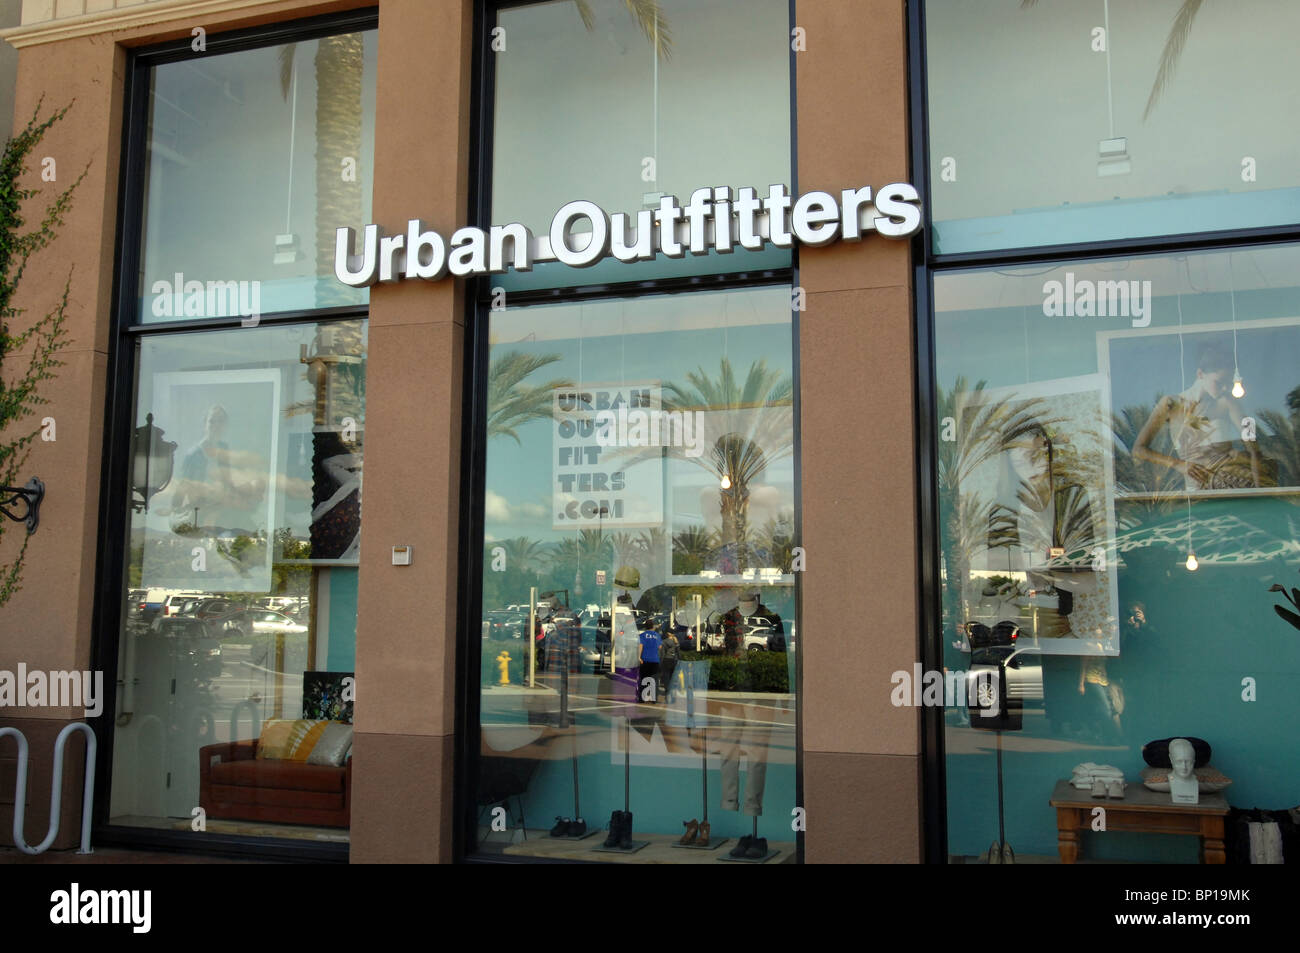 Urban Outfitters retail fashion clothing store in Orange County, CA - Stock Image